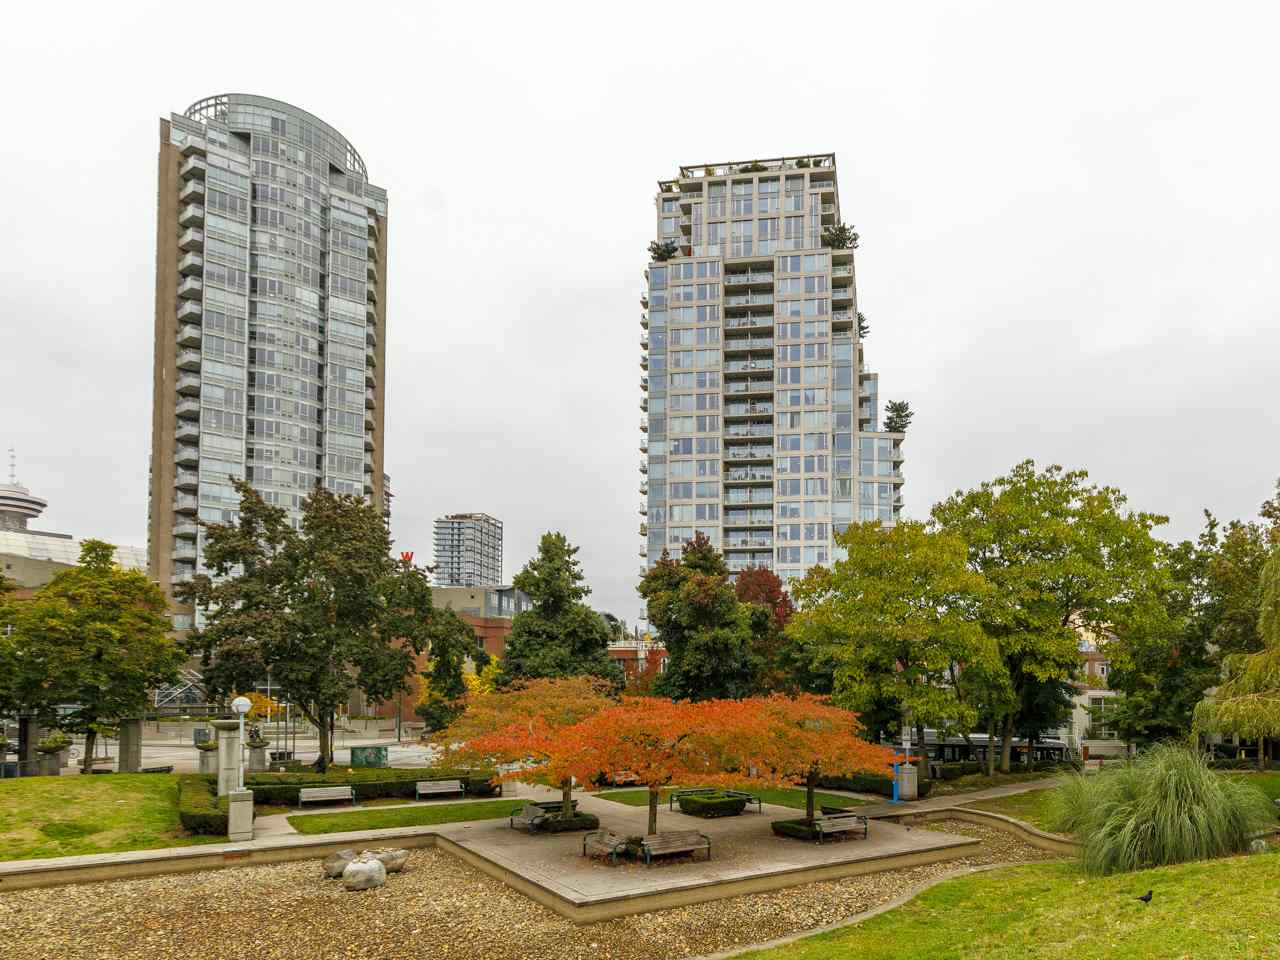 811 550 TAYLOR STREET - Downtown VW Apartment/Condo for sale, 1 Bedroom (R2513724) - #1